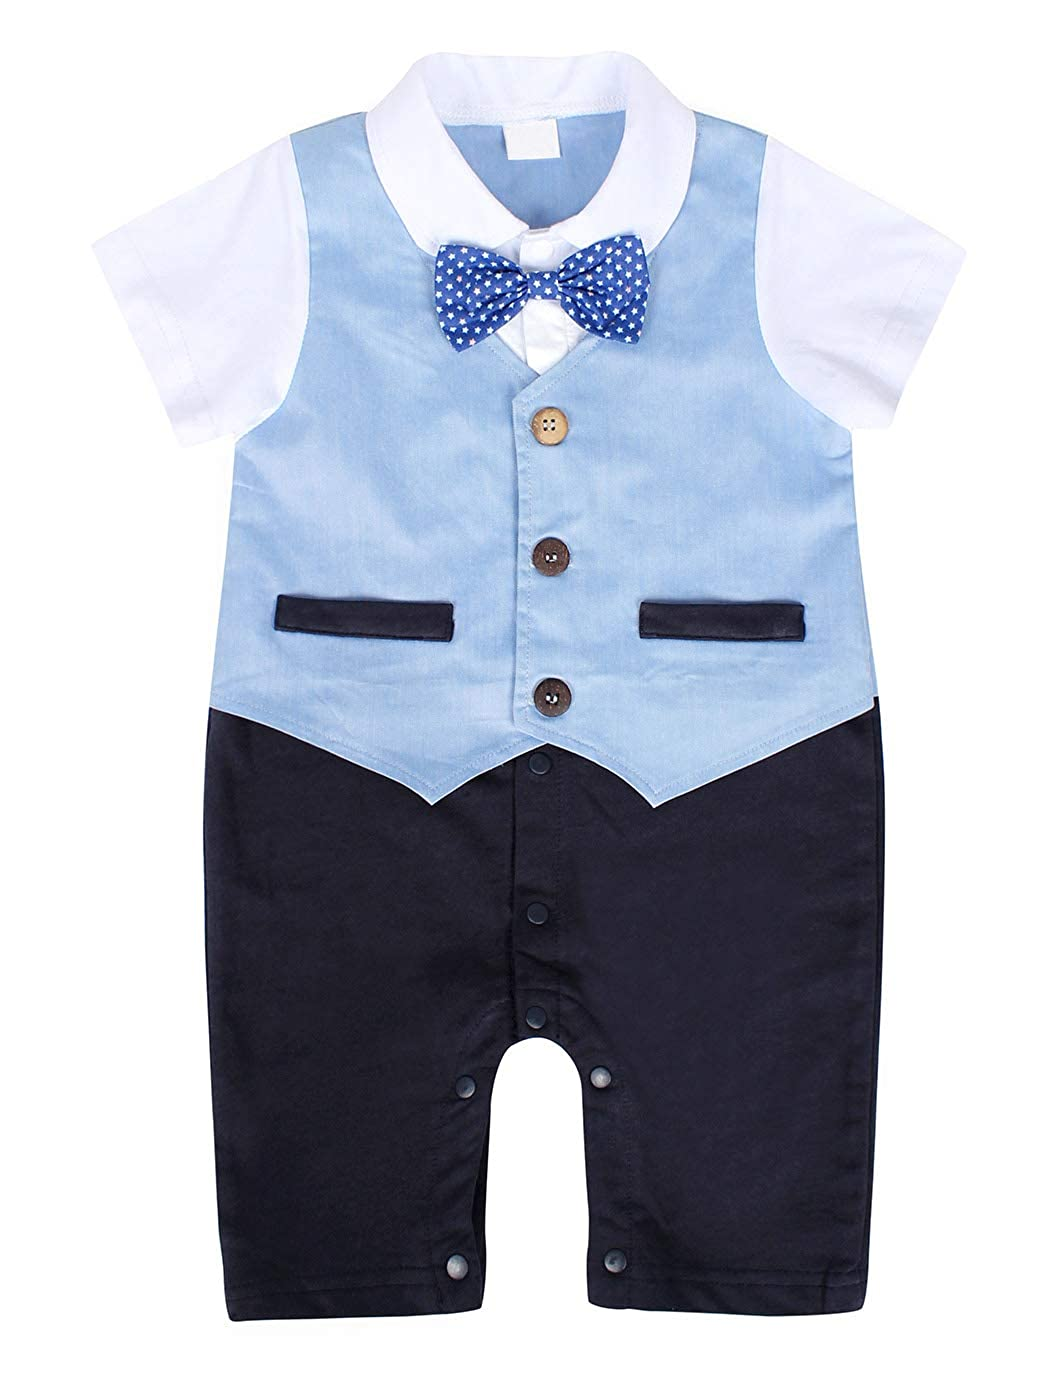 MetCuento Baby Boys One-Piece Rompers Short Sleeve Bow Tie Onesie Formal Suit Gentleman Wedding Outfit